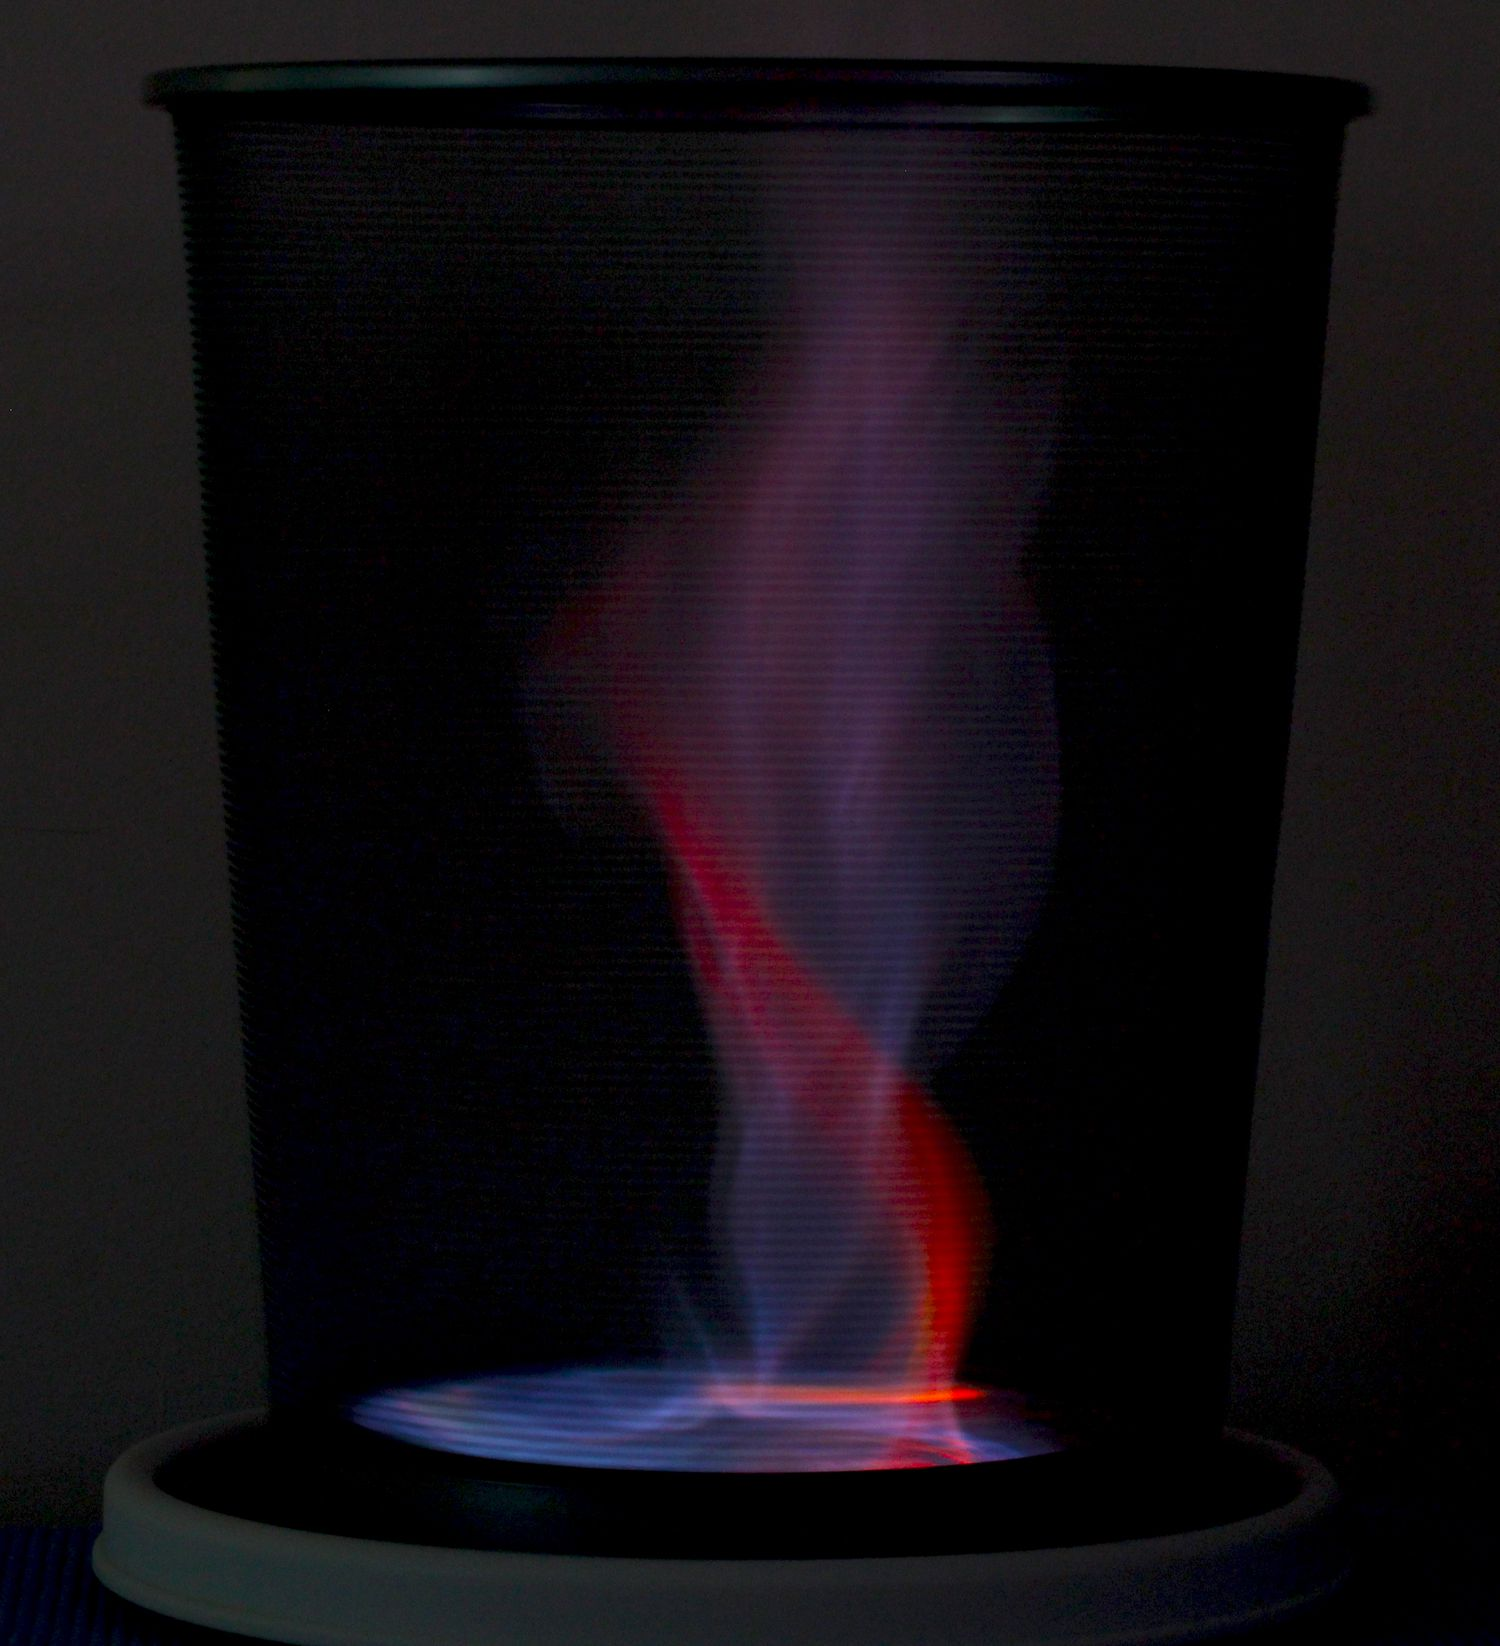 How To Make a Red and Blue Fire Tornado